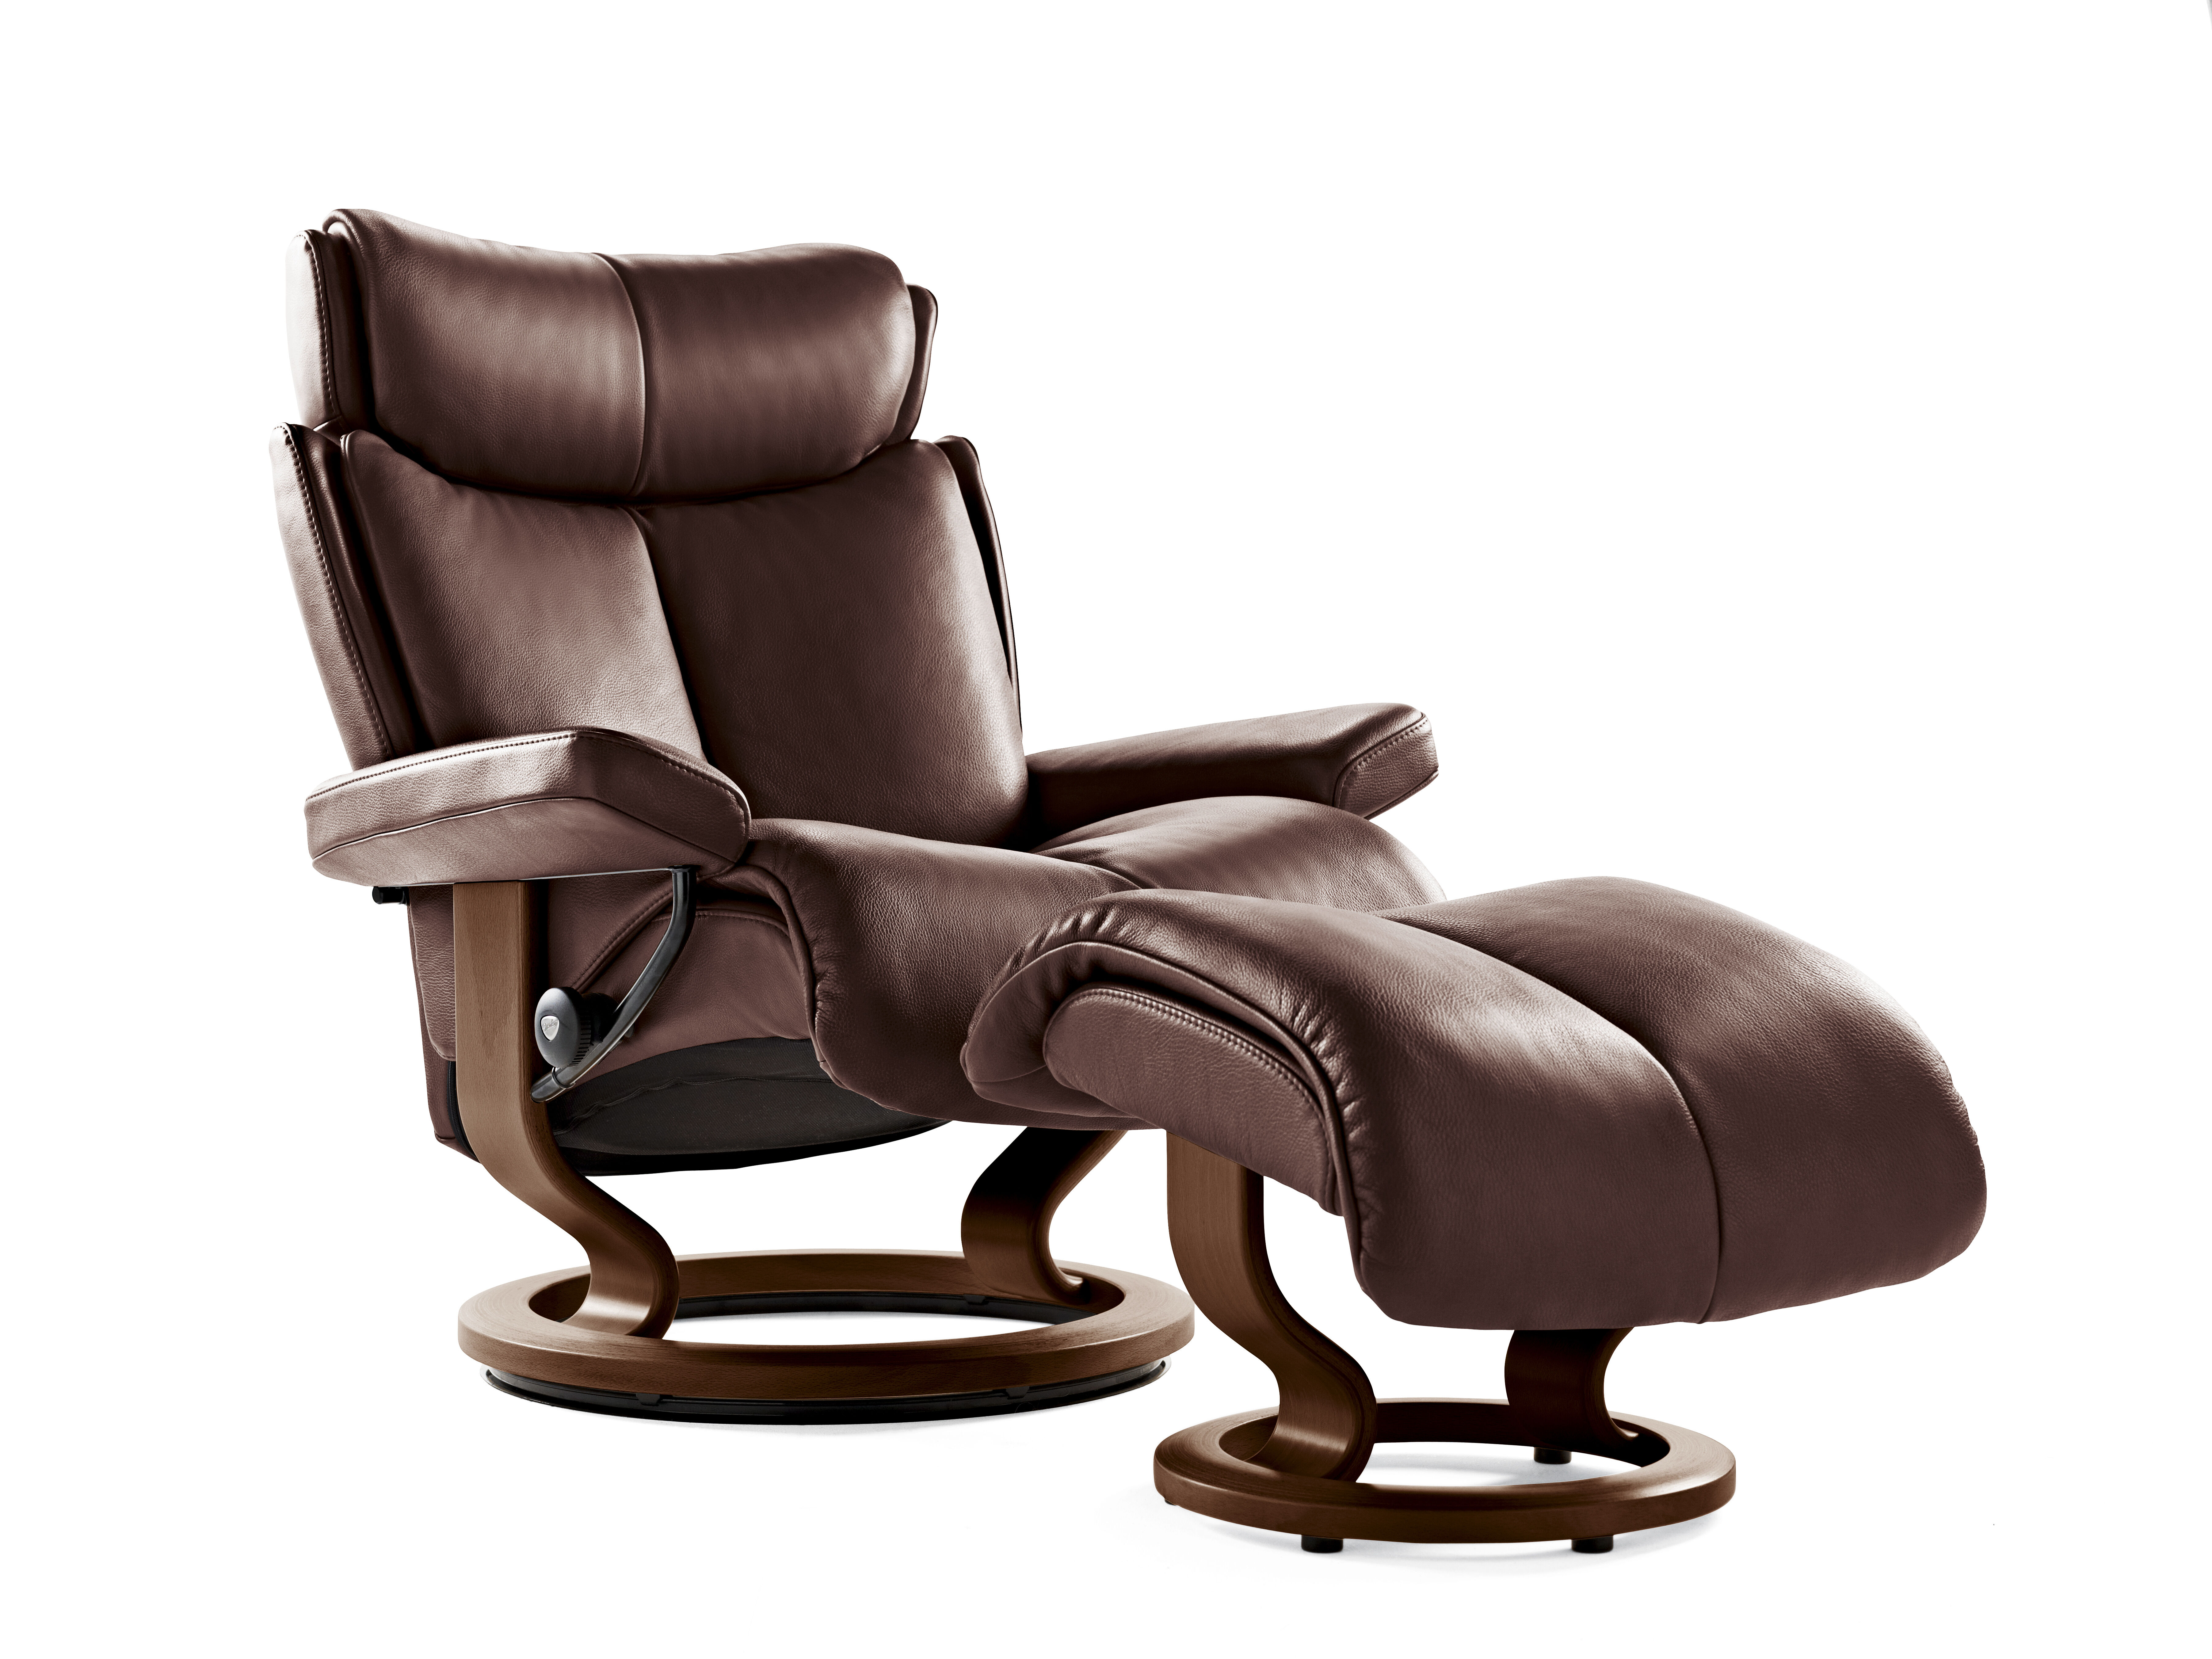 Wide Chair And Ottoman Contemporary Large Swivel Chair And Ottoman In Chocolate